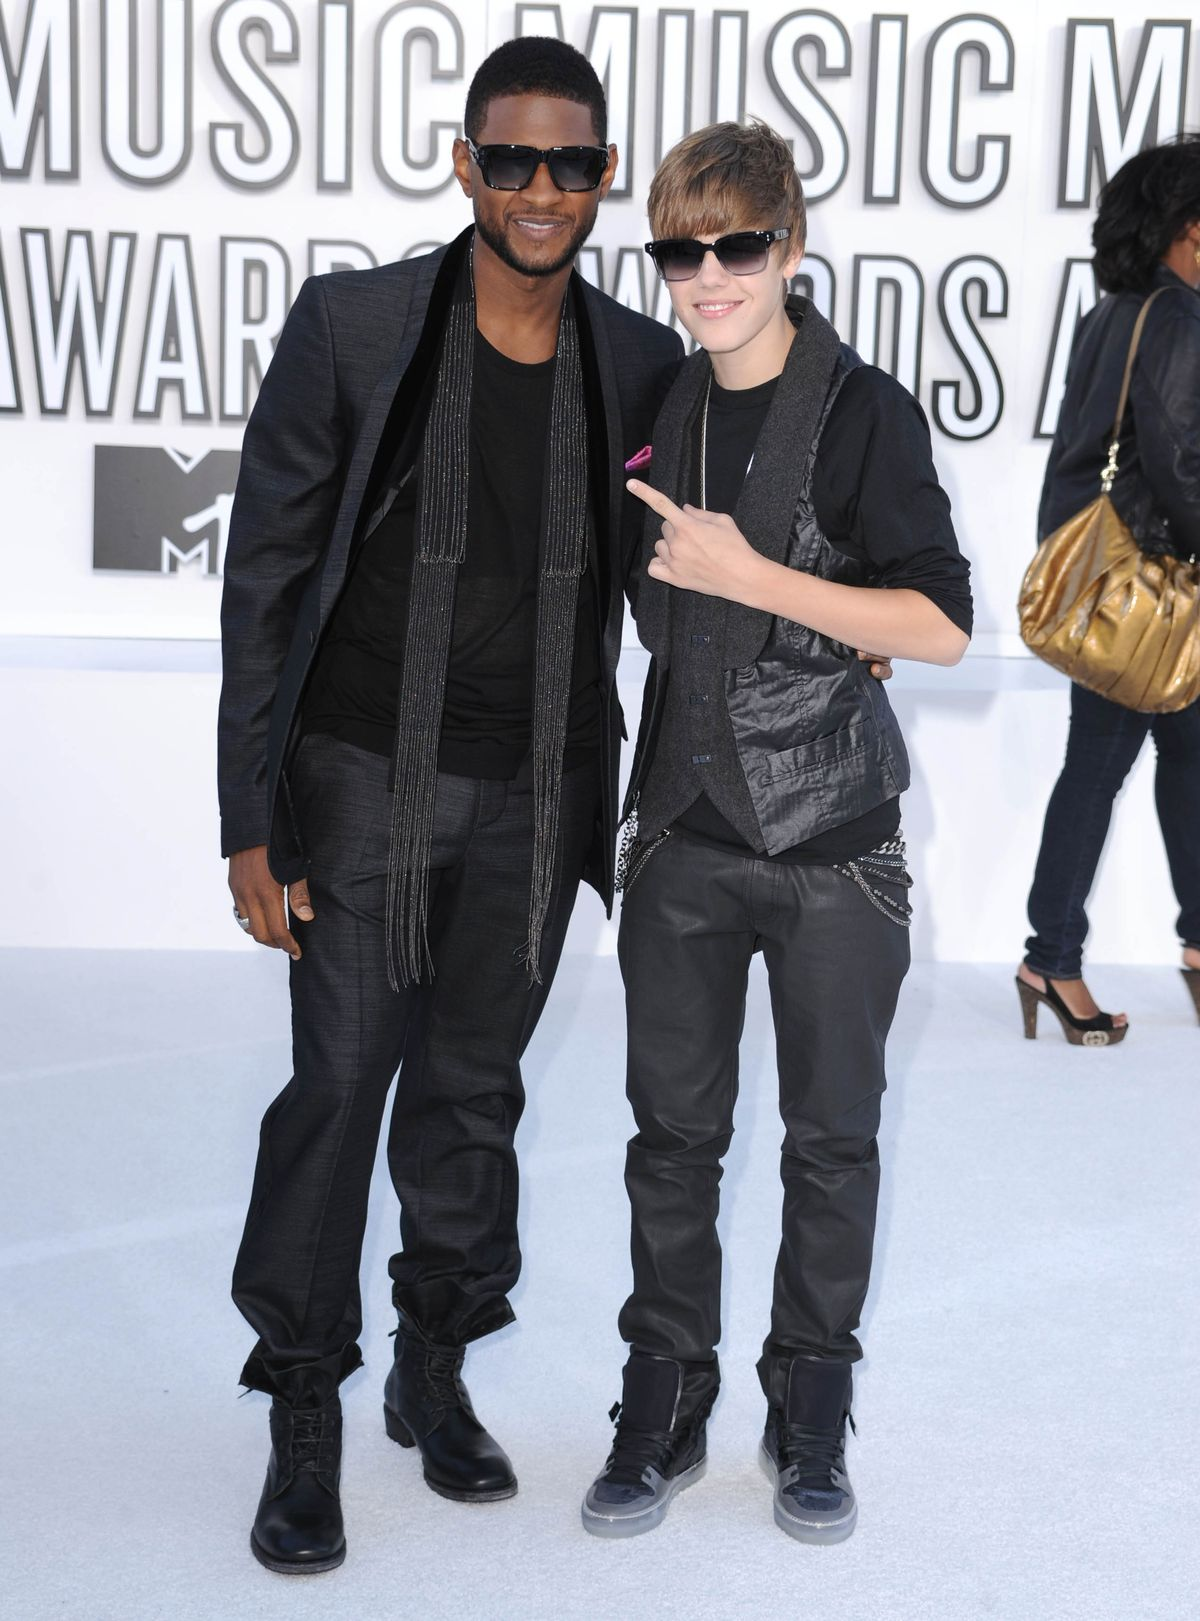 LOS ANGELES, CA - SEPTEMBER 12: Usher and Justin Bieber attends the 2010 MTV Video Music Awards at Nokia Theatre L.A. Live on September 12, 2010 in Los Angeles, California. (Photo by Steve Granitz/WireImage)